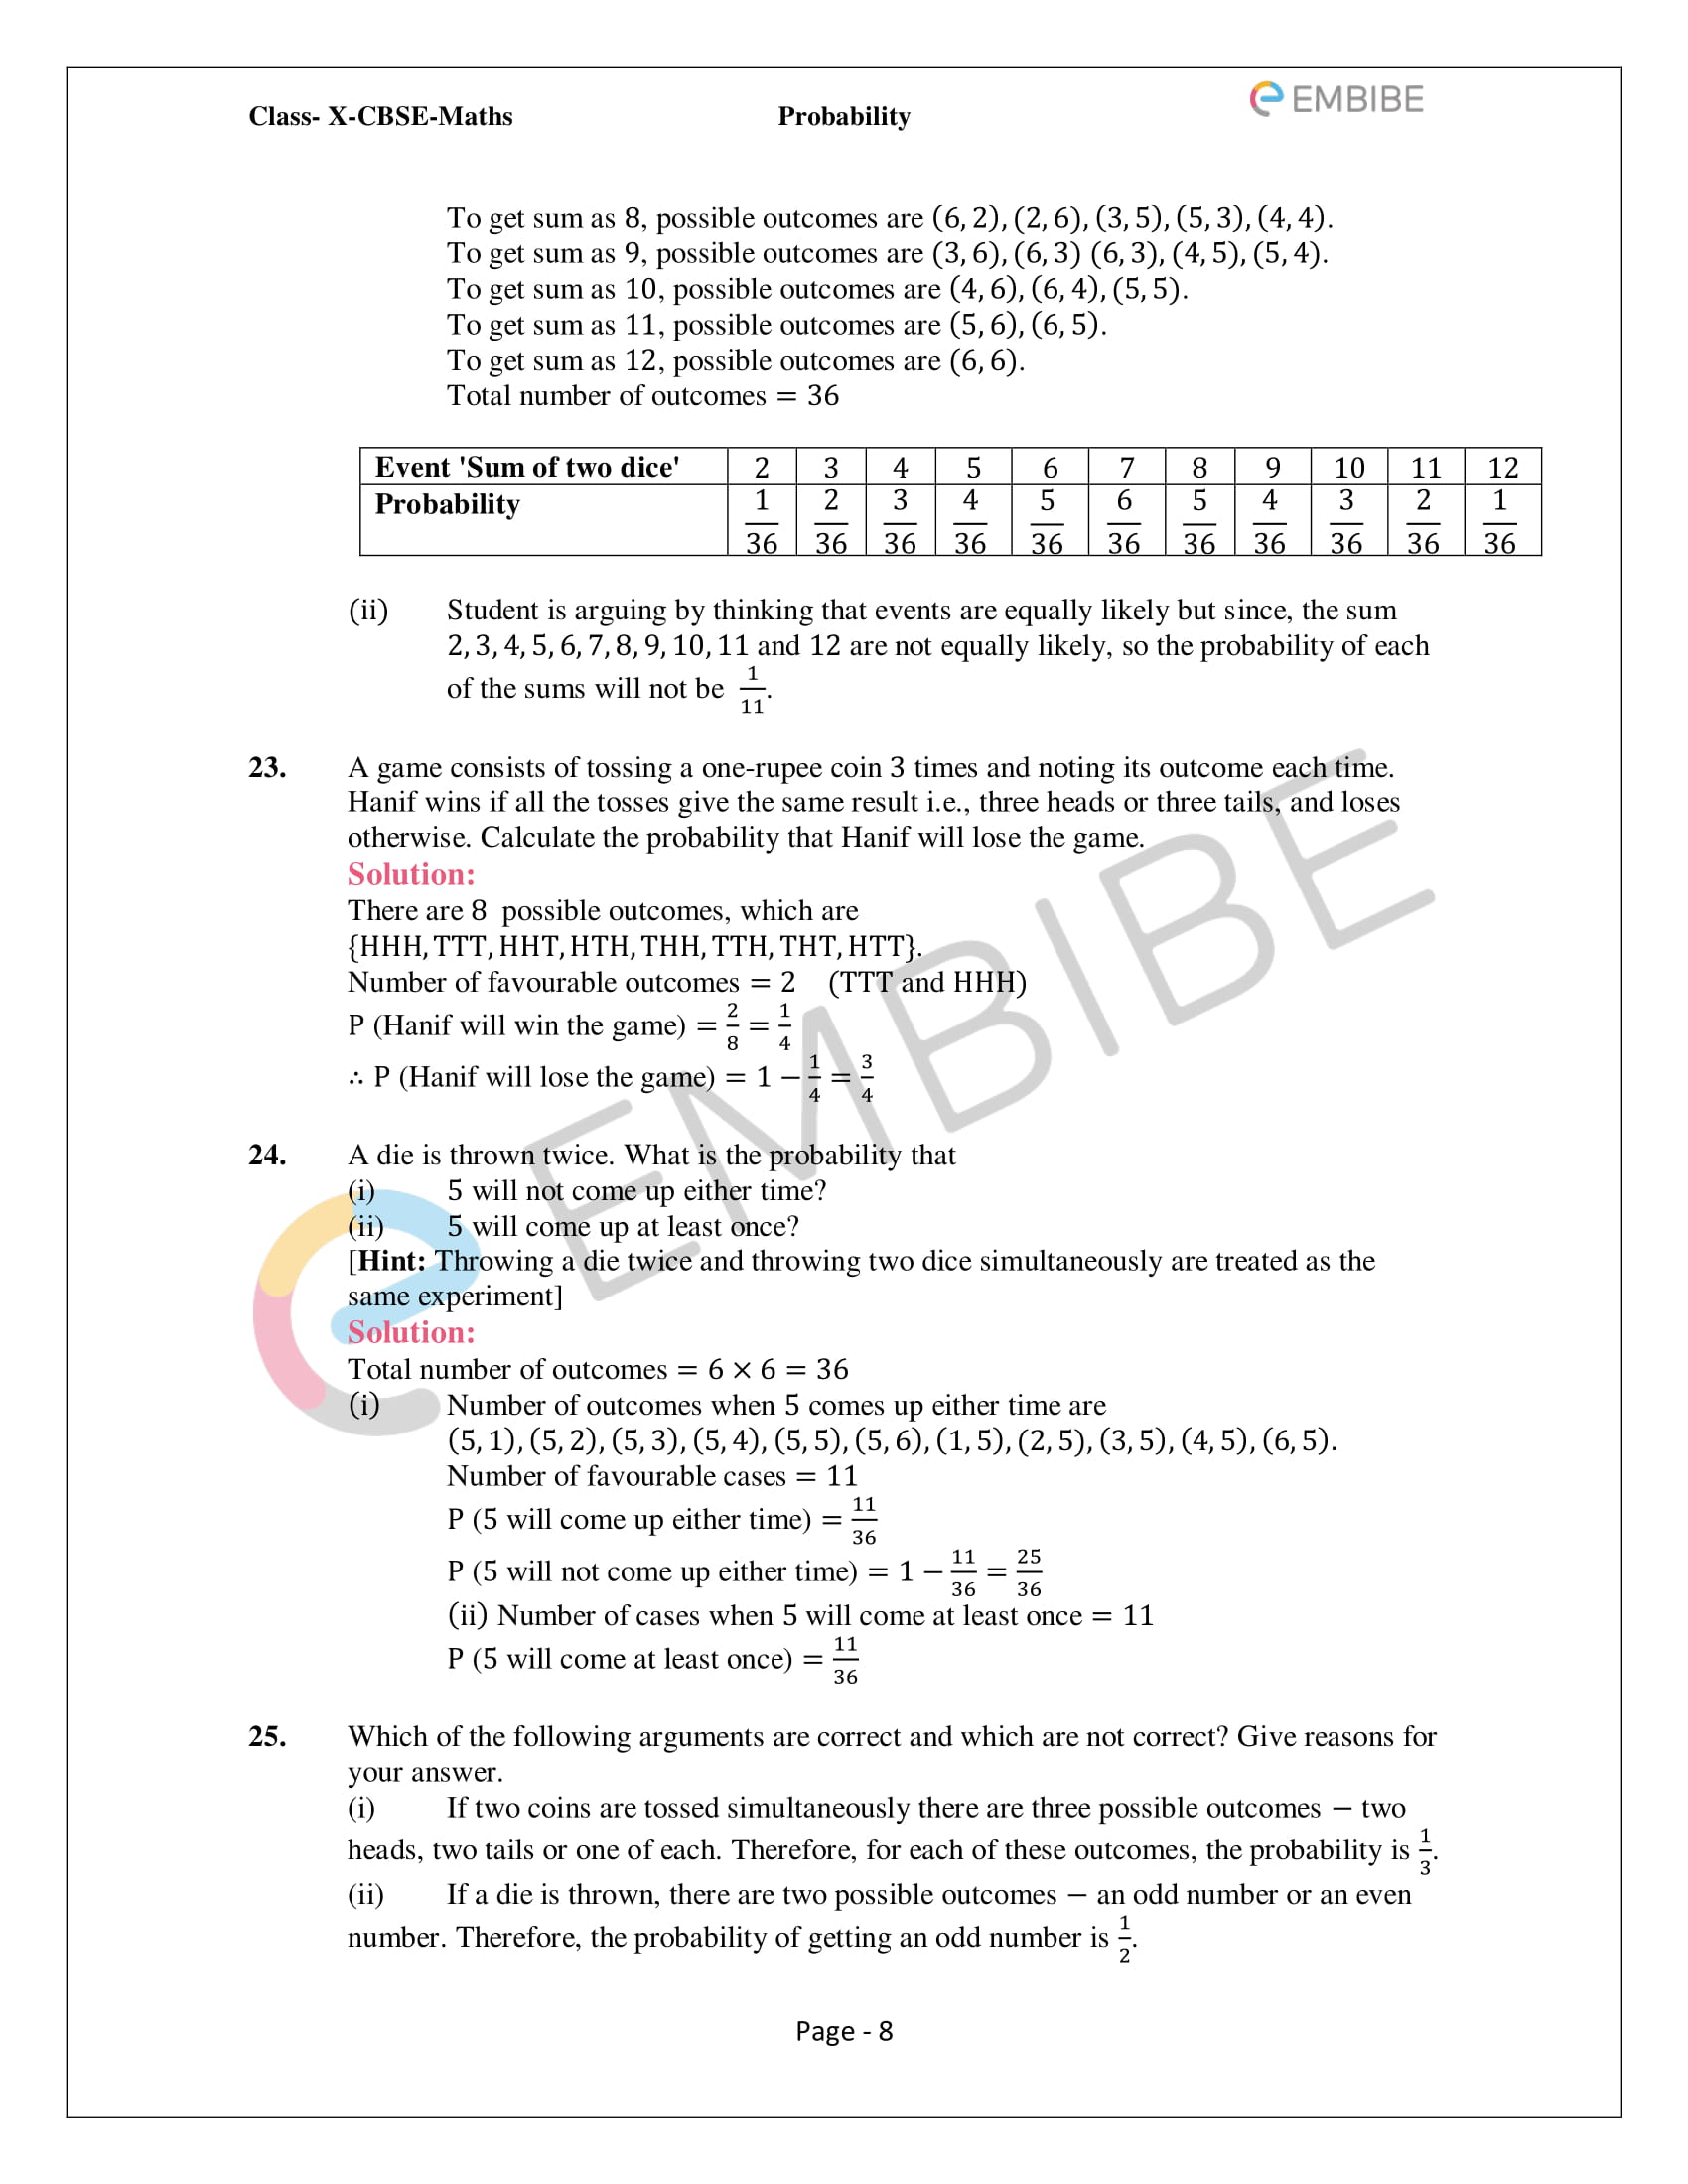 CBSE NCERT Solutions For Class 10 Maths Chapter 15 - Probability - 8